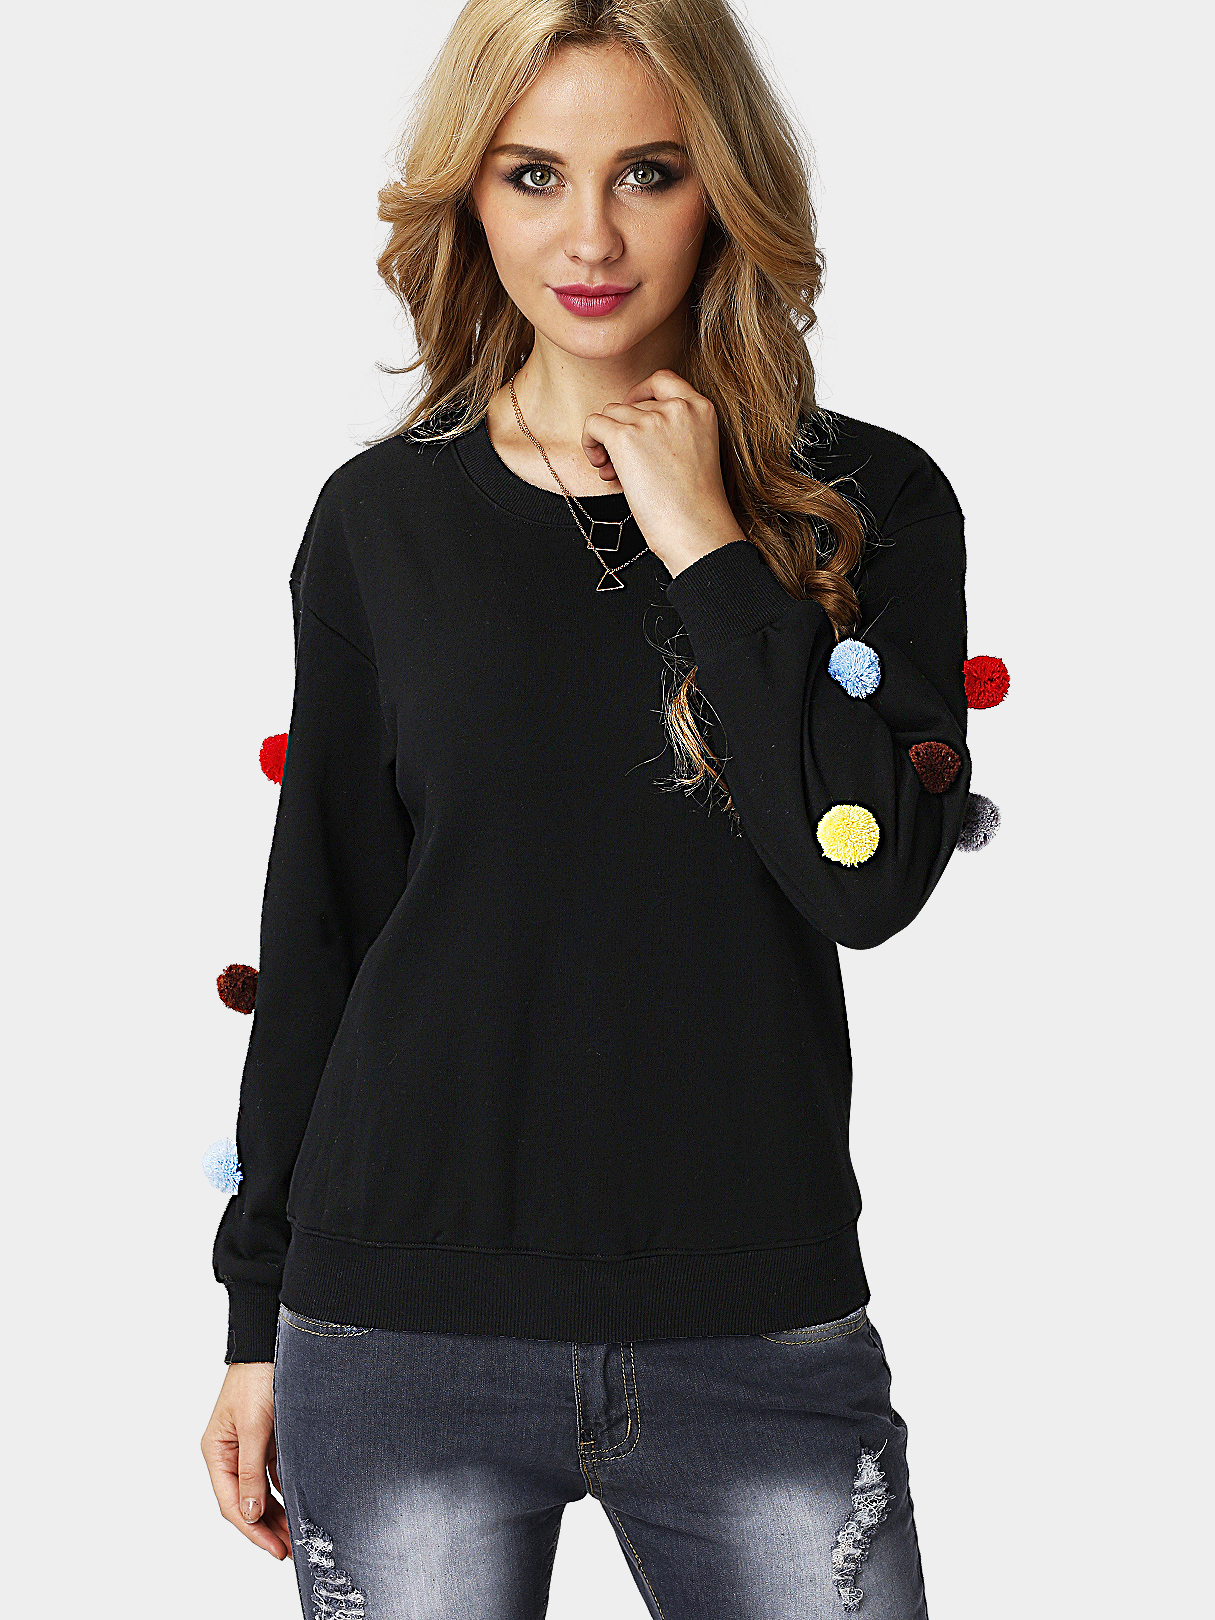 Black Long Sleeves Round Neck Sweatshirt with Pom Pom Details grey fashion round neck long sleeves pom pom details sweatshirt